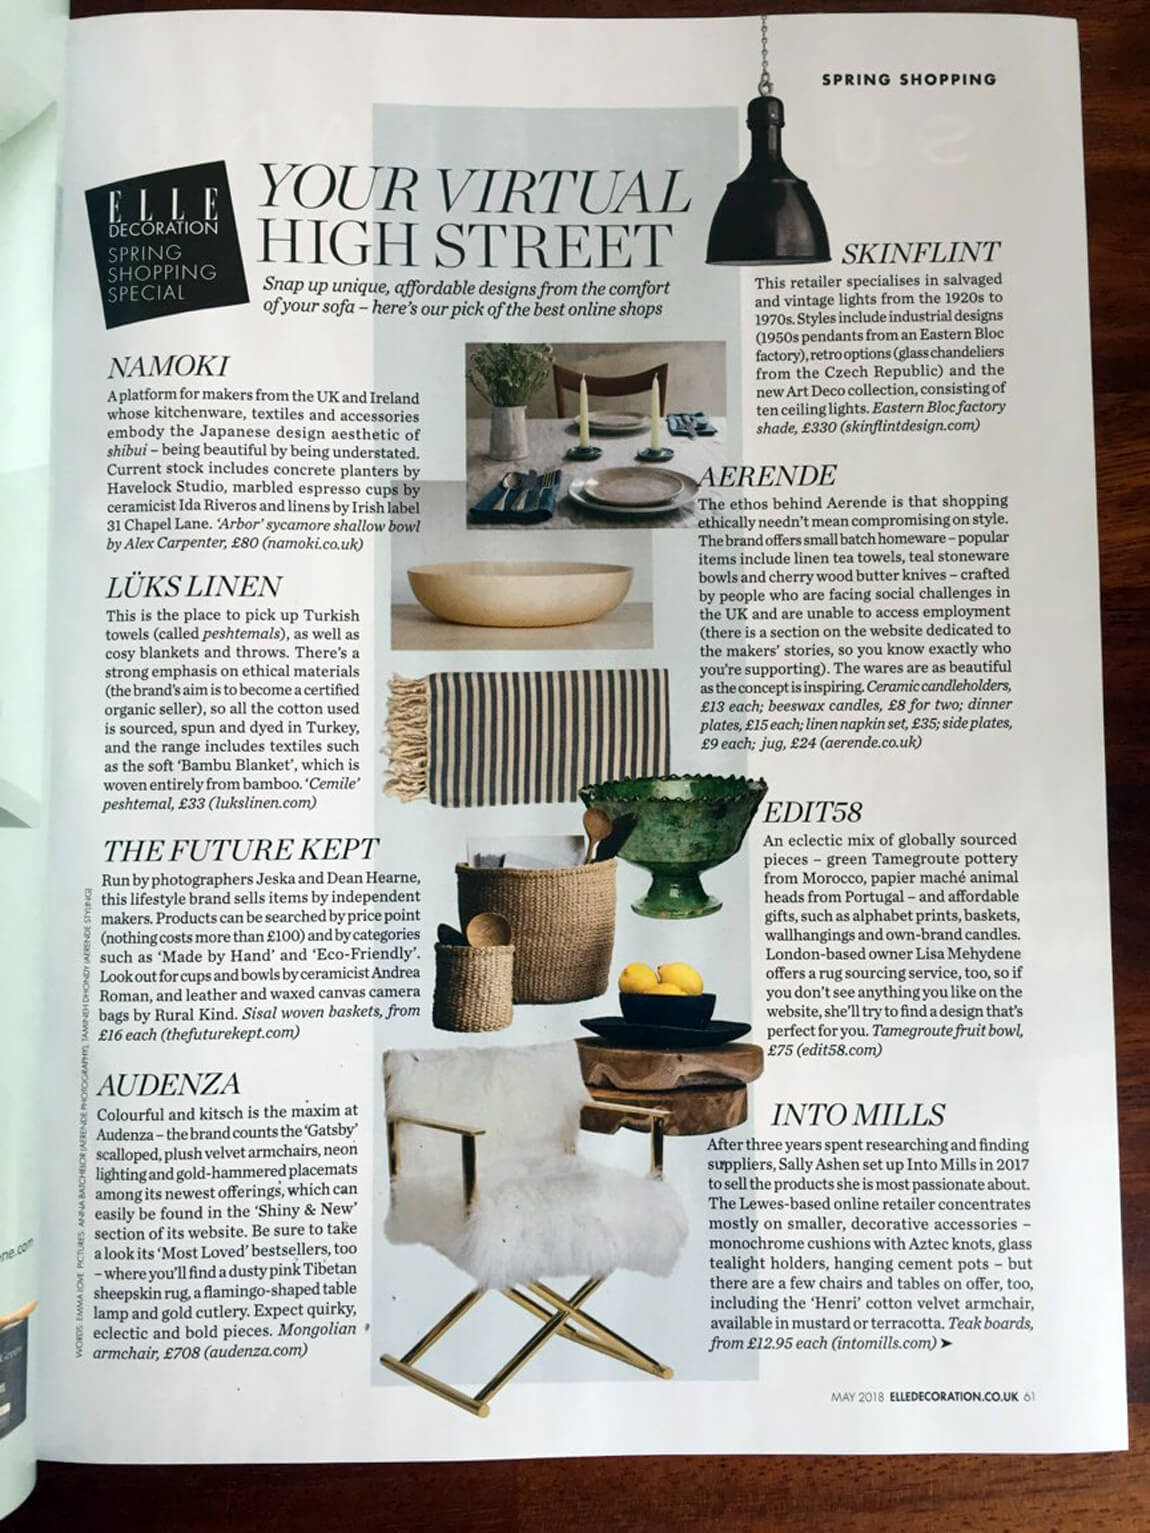 Chalk & Moss has been selected as one of the UK's best online shops (May 2018 issue, out in shops 5 April). Turn to page 63 for the Chalk & Moss writeup.